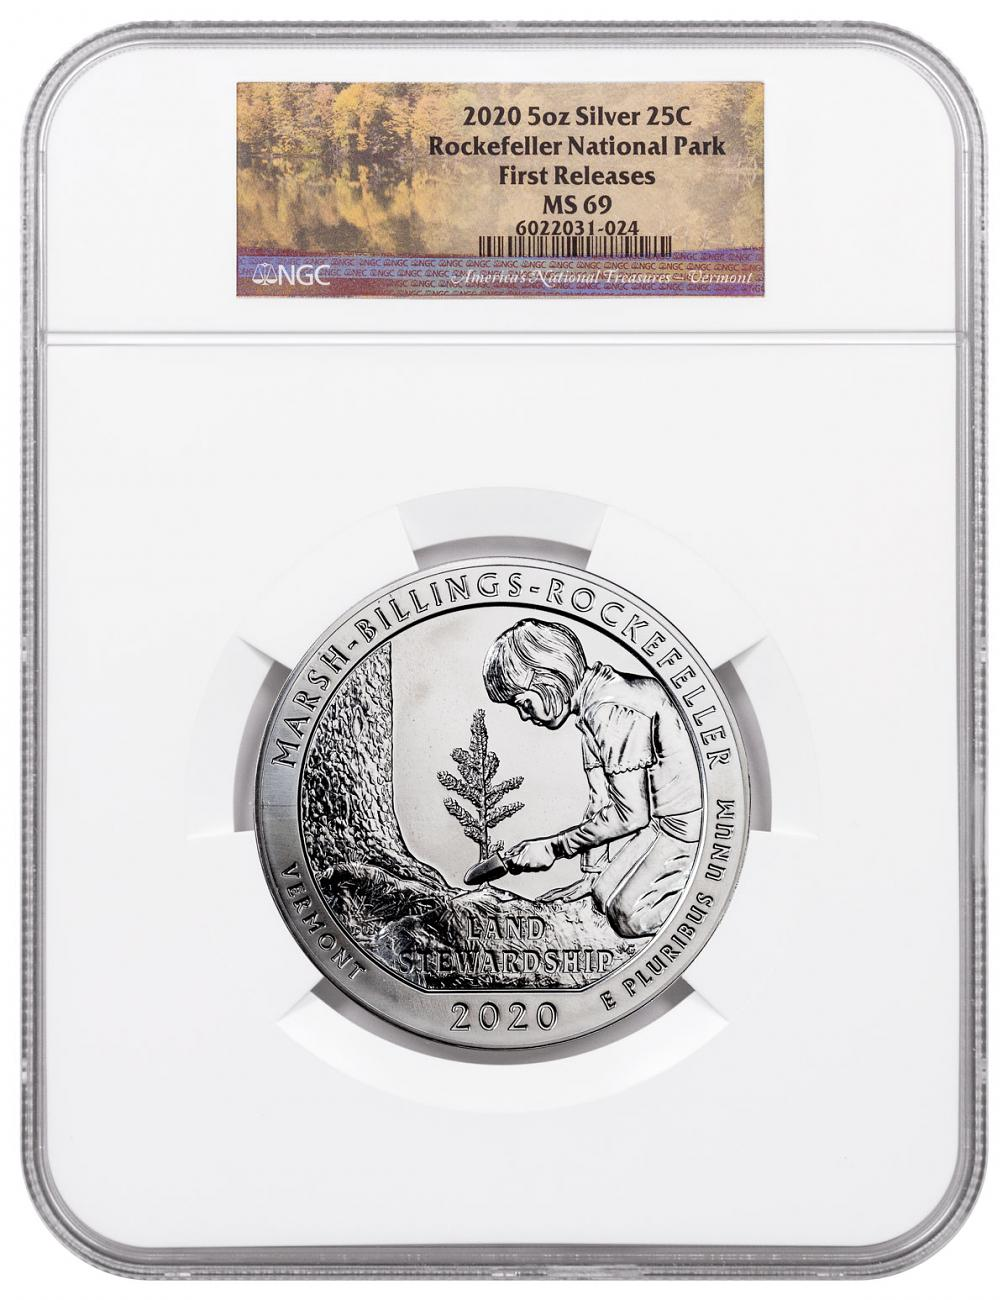 2020 Marsh-Billings-Rockefeller 5 oz. Silver ATB America the Beautiful Coin NGC MS69 FR White Core Holder Marsh Theme Label